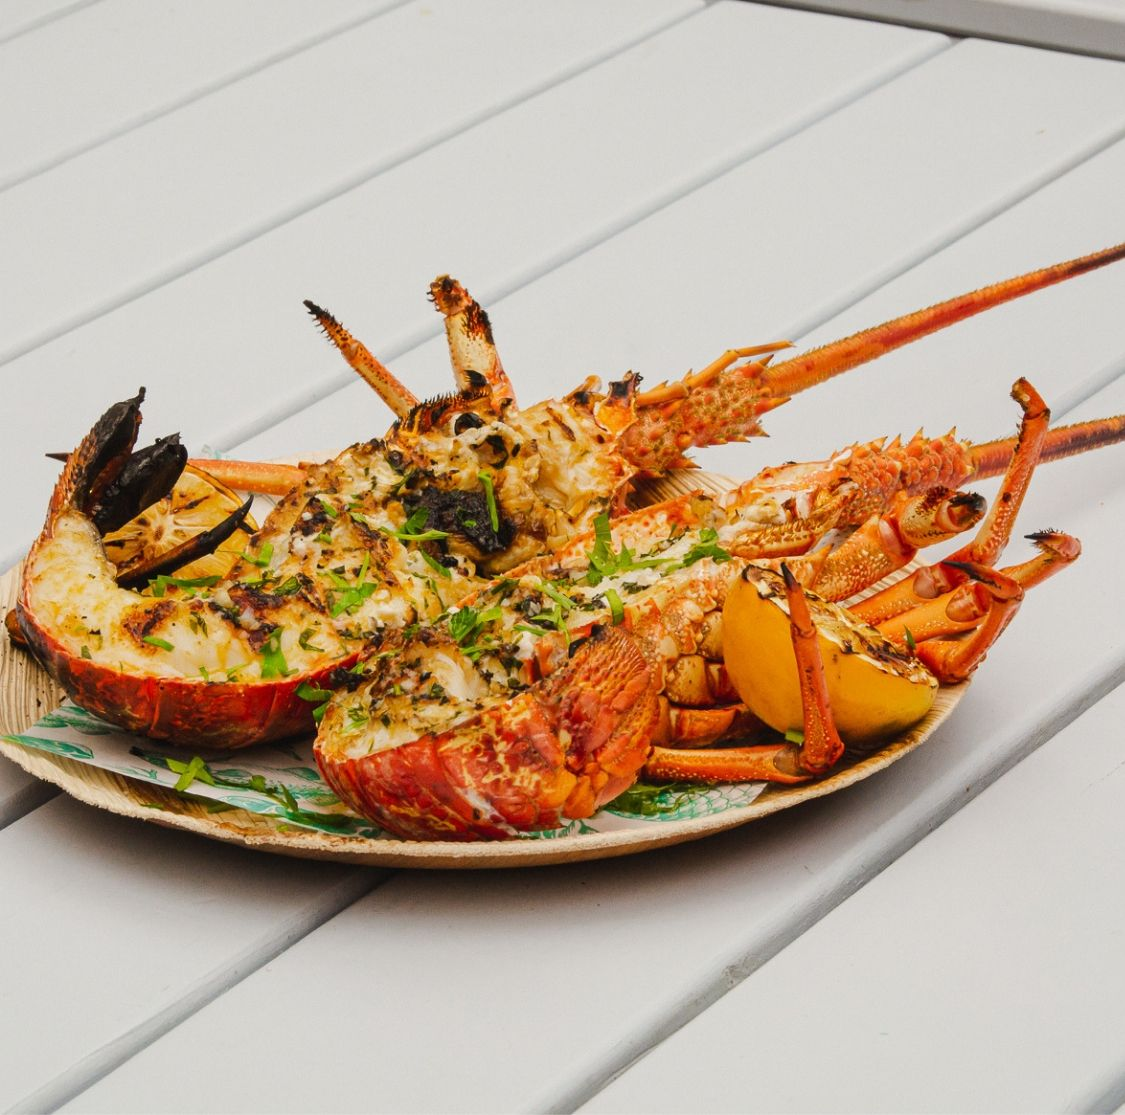 Mar and Tierra Grilled Crayfish